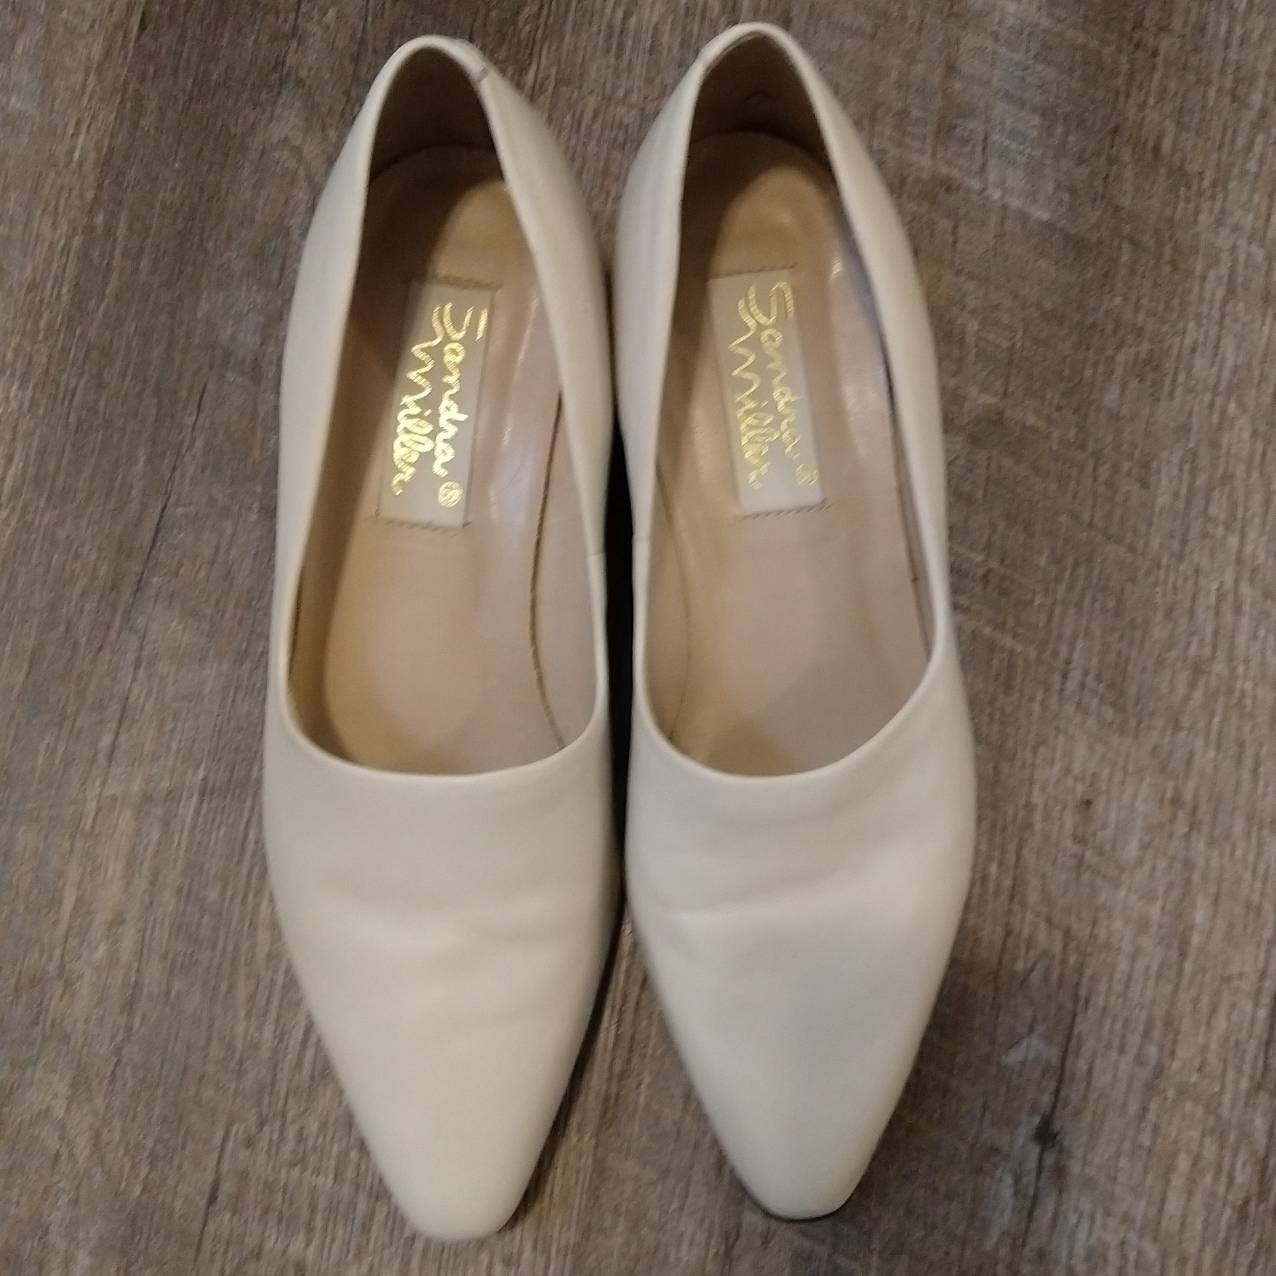 IVORY comma heel LOW PUMPS 1990s 90s shoes 8 8.5